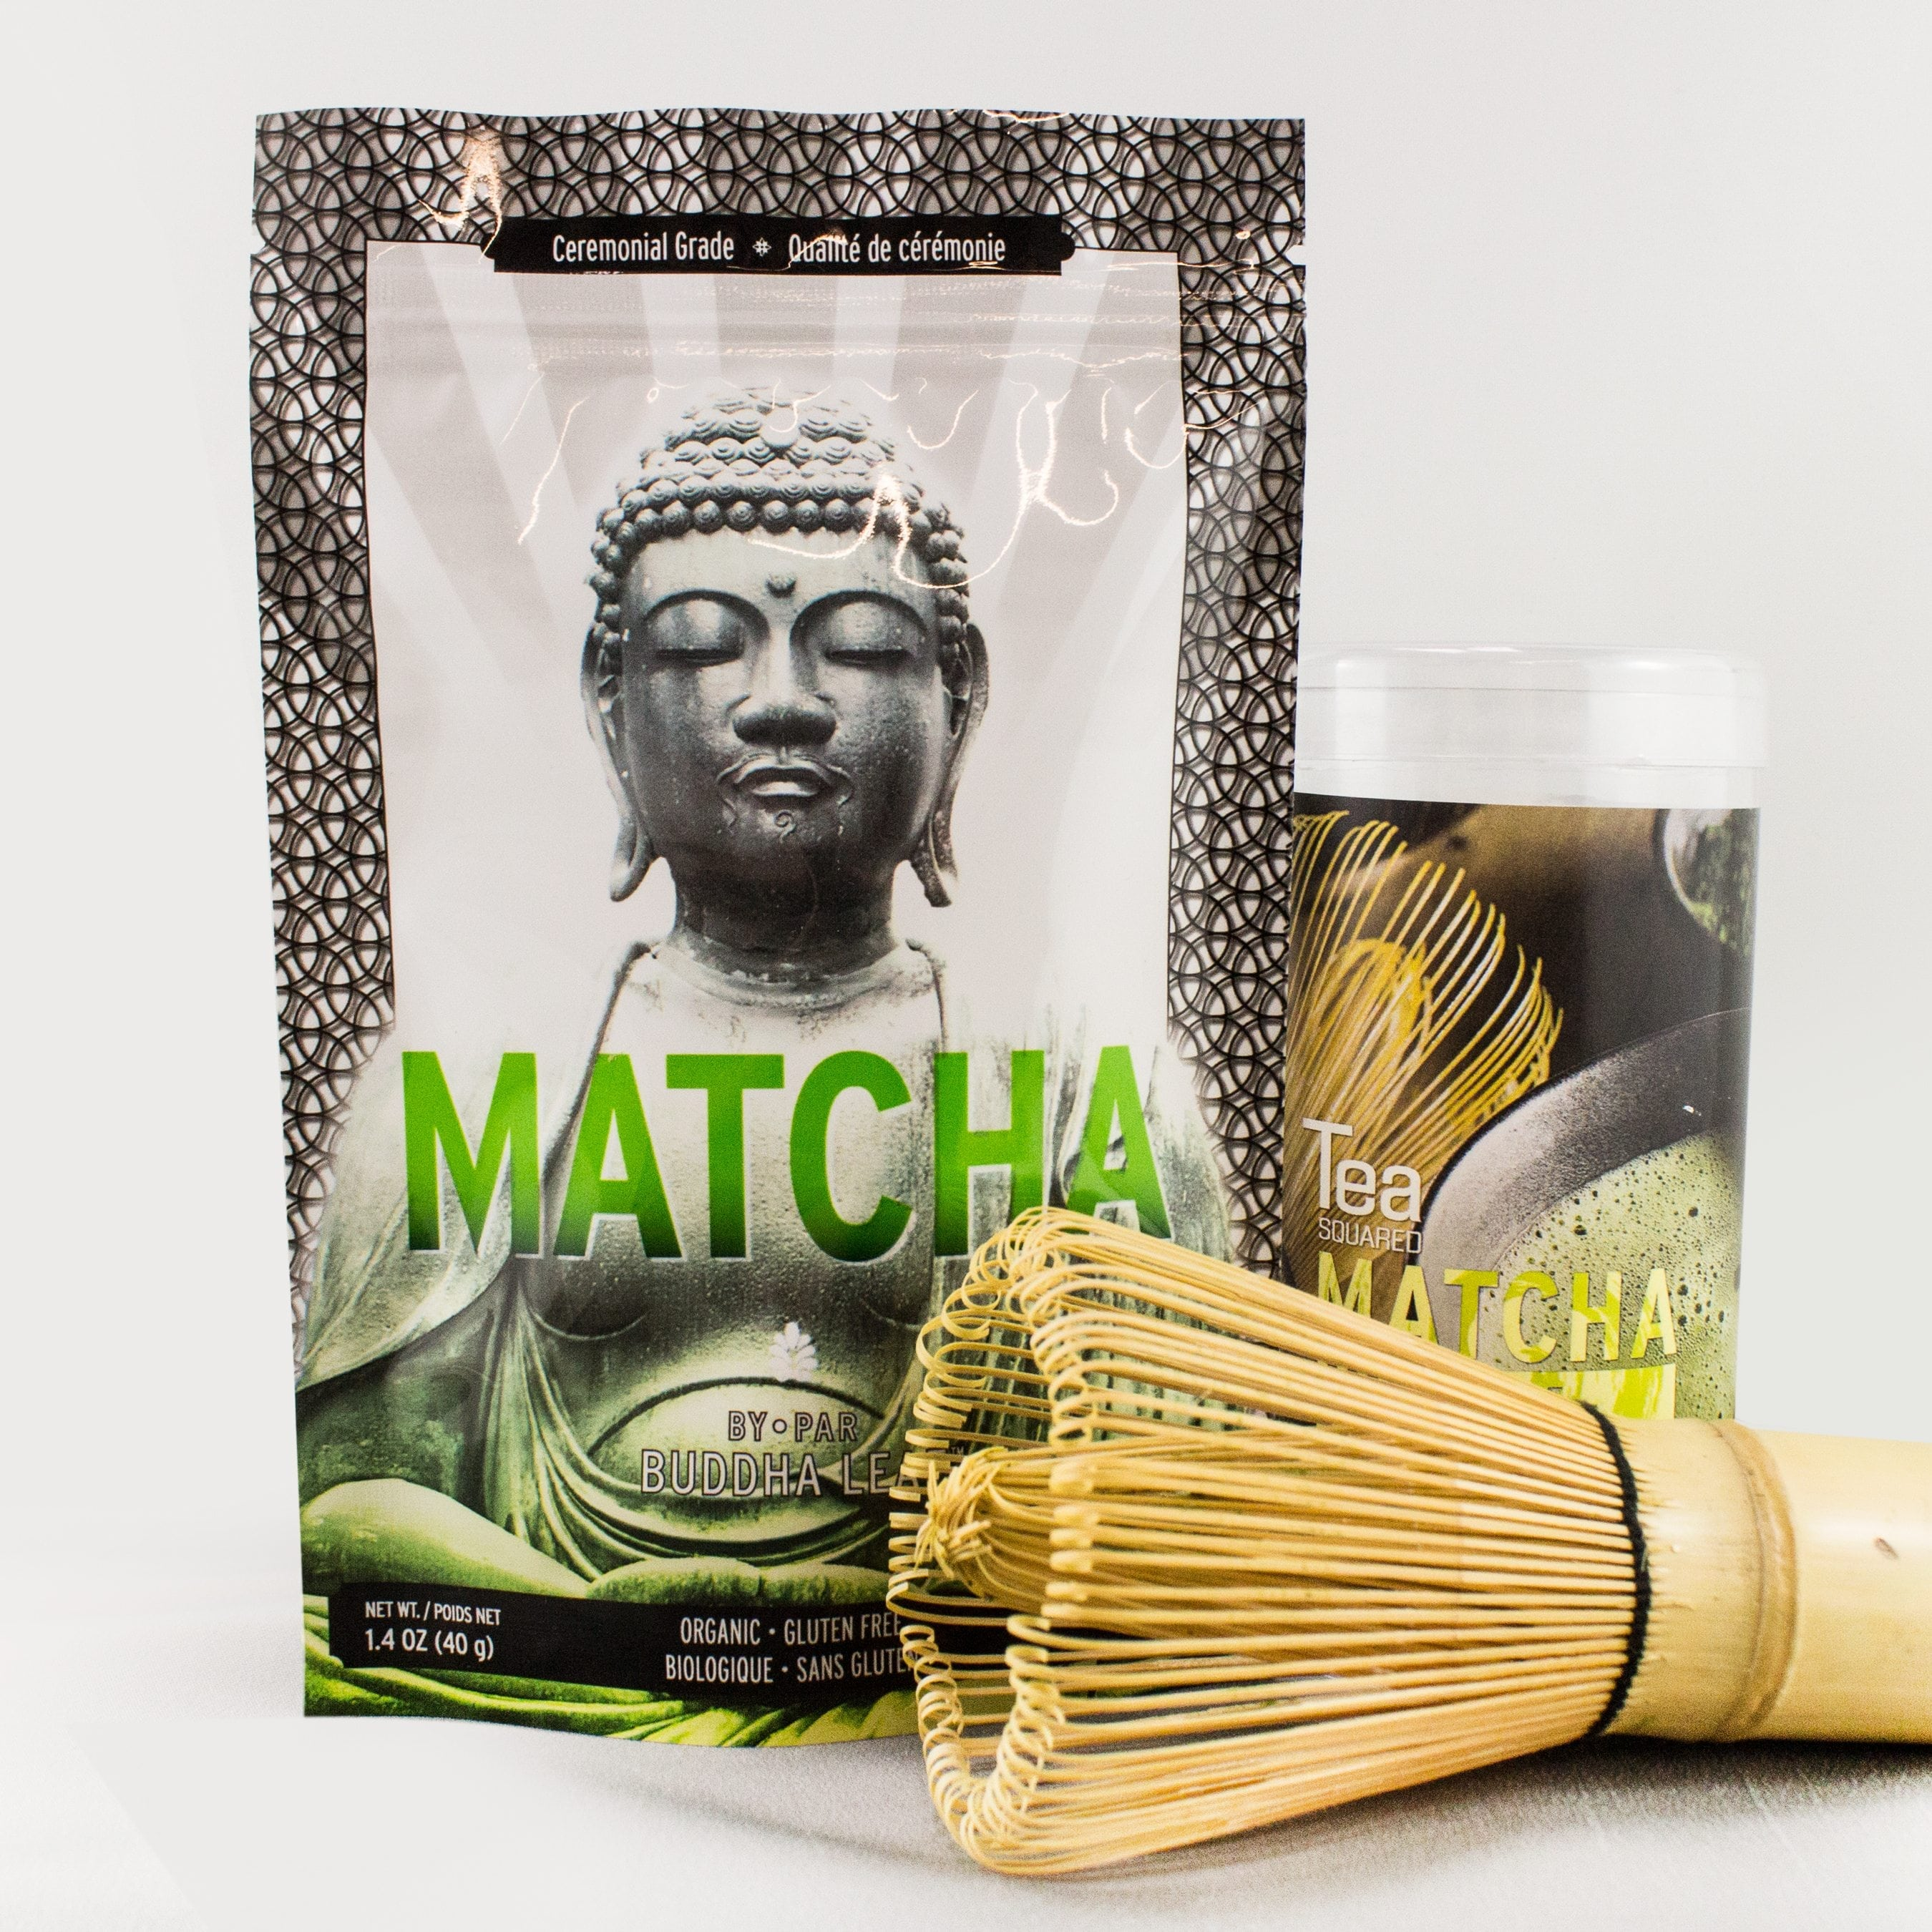 Ceremonial Grade Matcha & Whisk